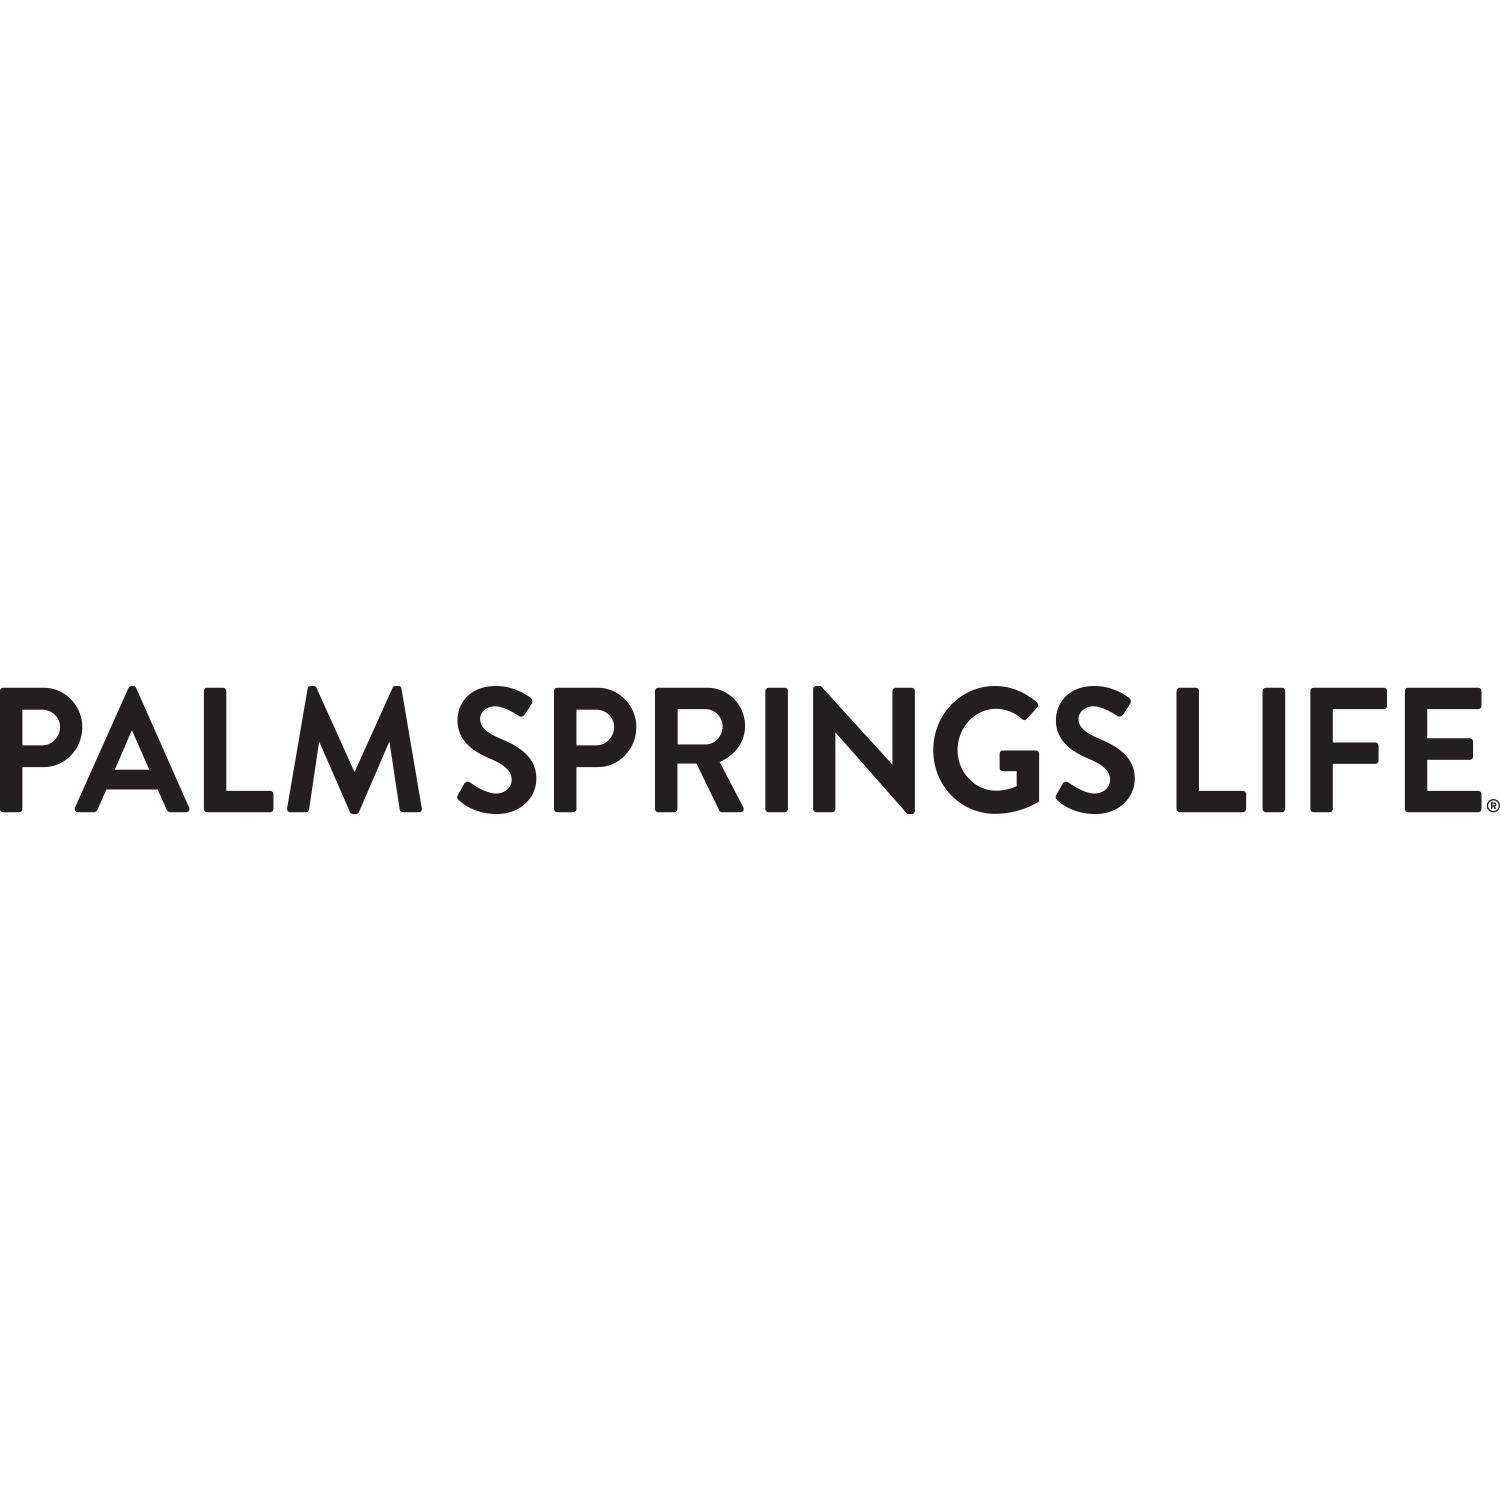 Palm Springs Life (2).png